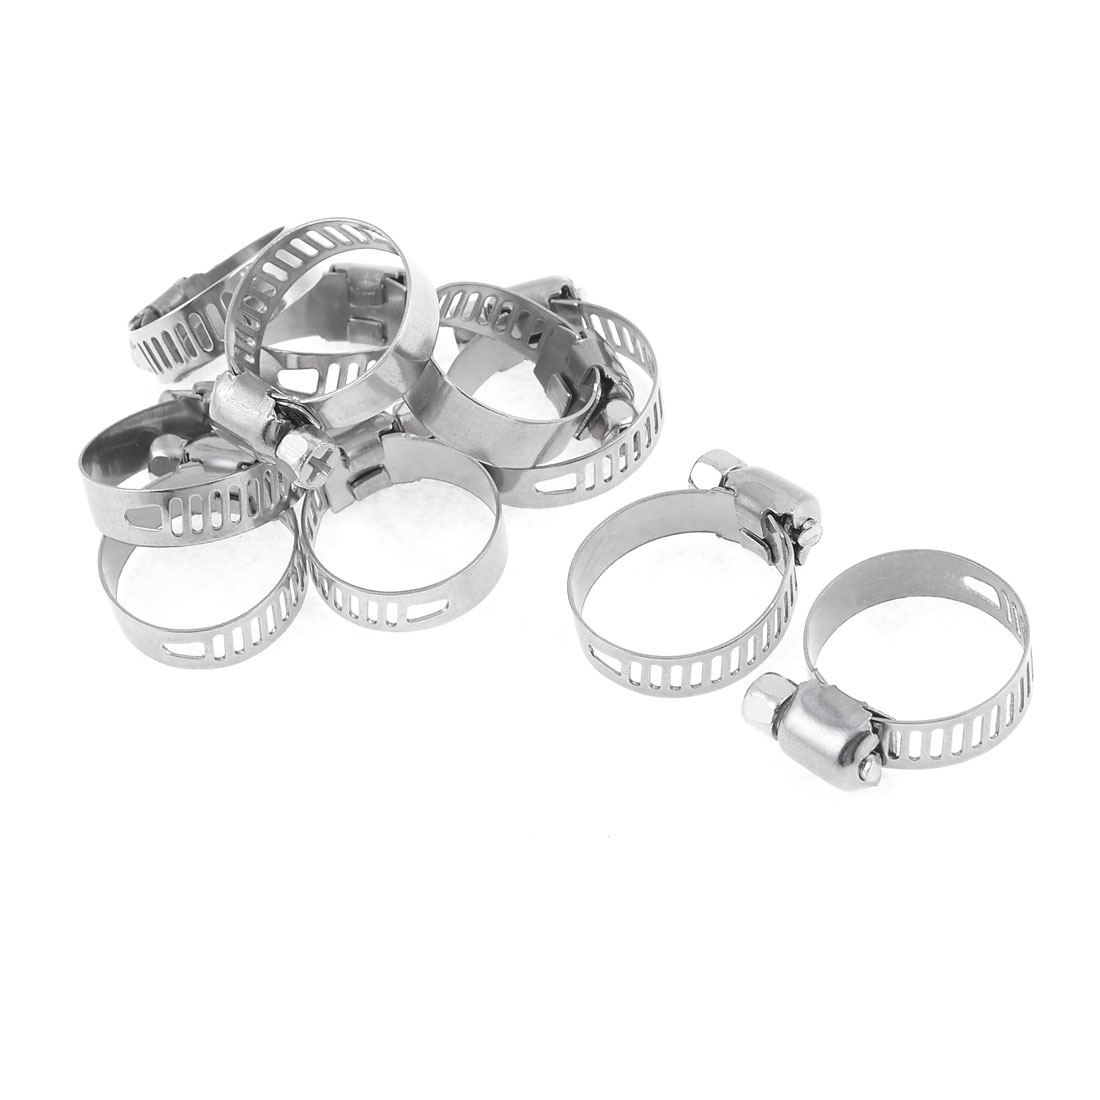 10 Pcs Adjustable Stainless Steel Worm Drive Hose Clamp